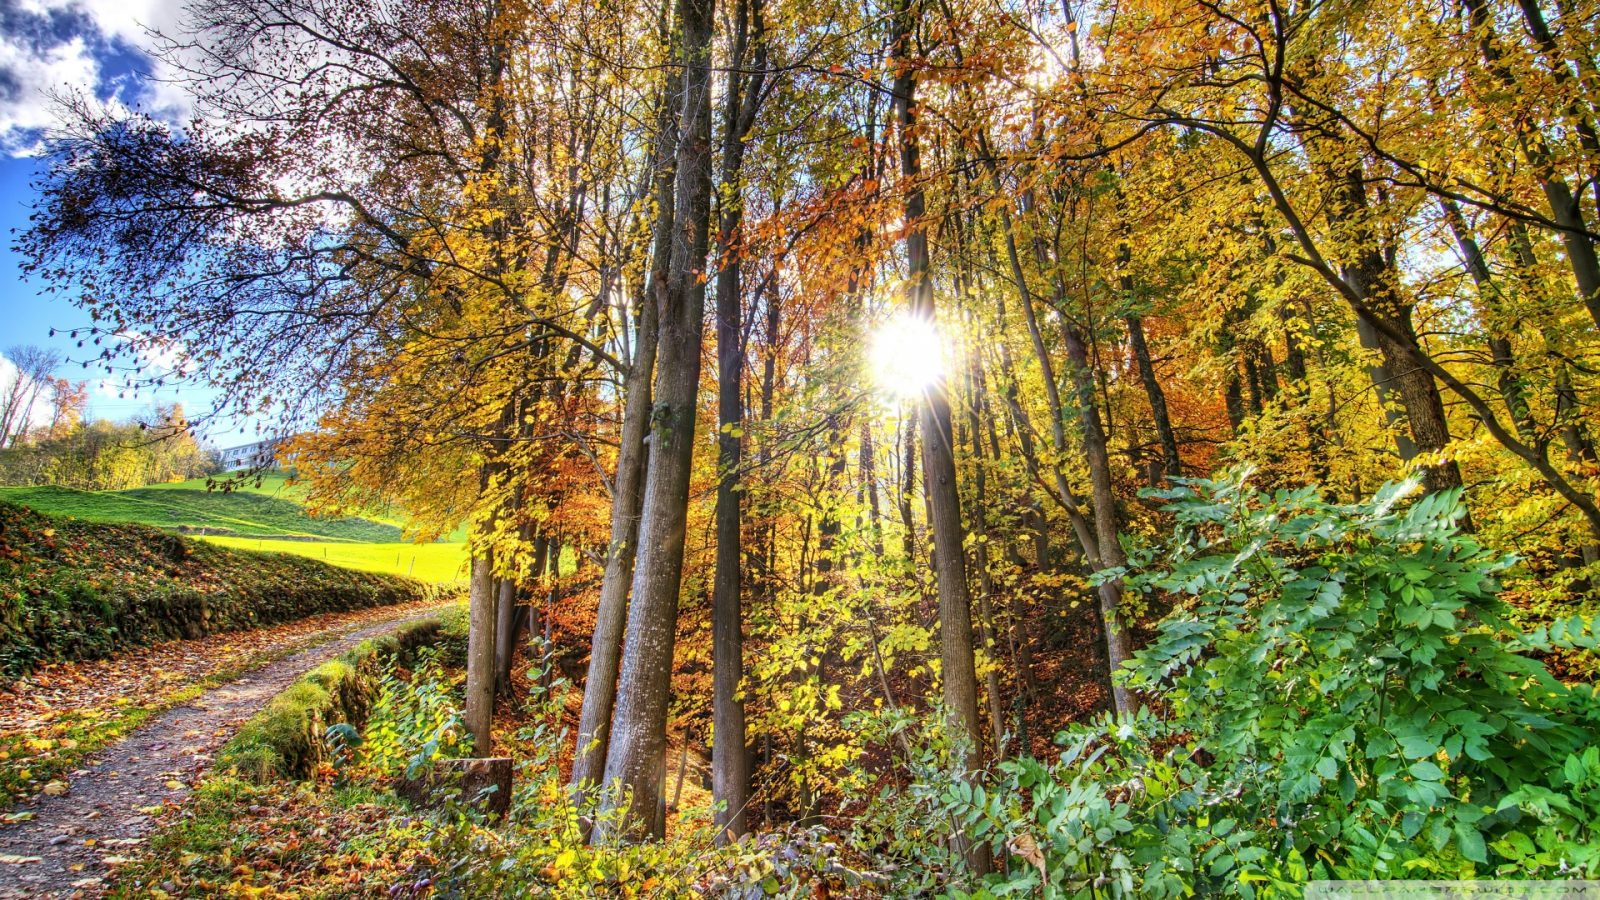 sunlighted_forest_hdr-wallpaper-1920x1080